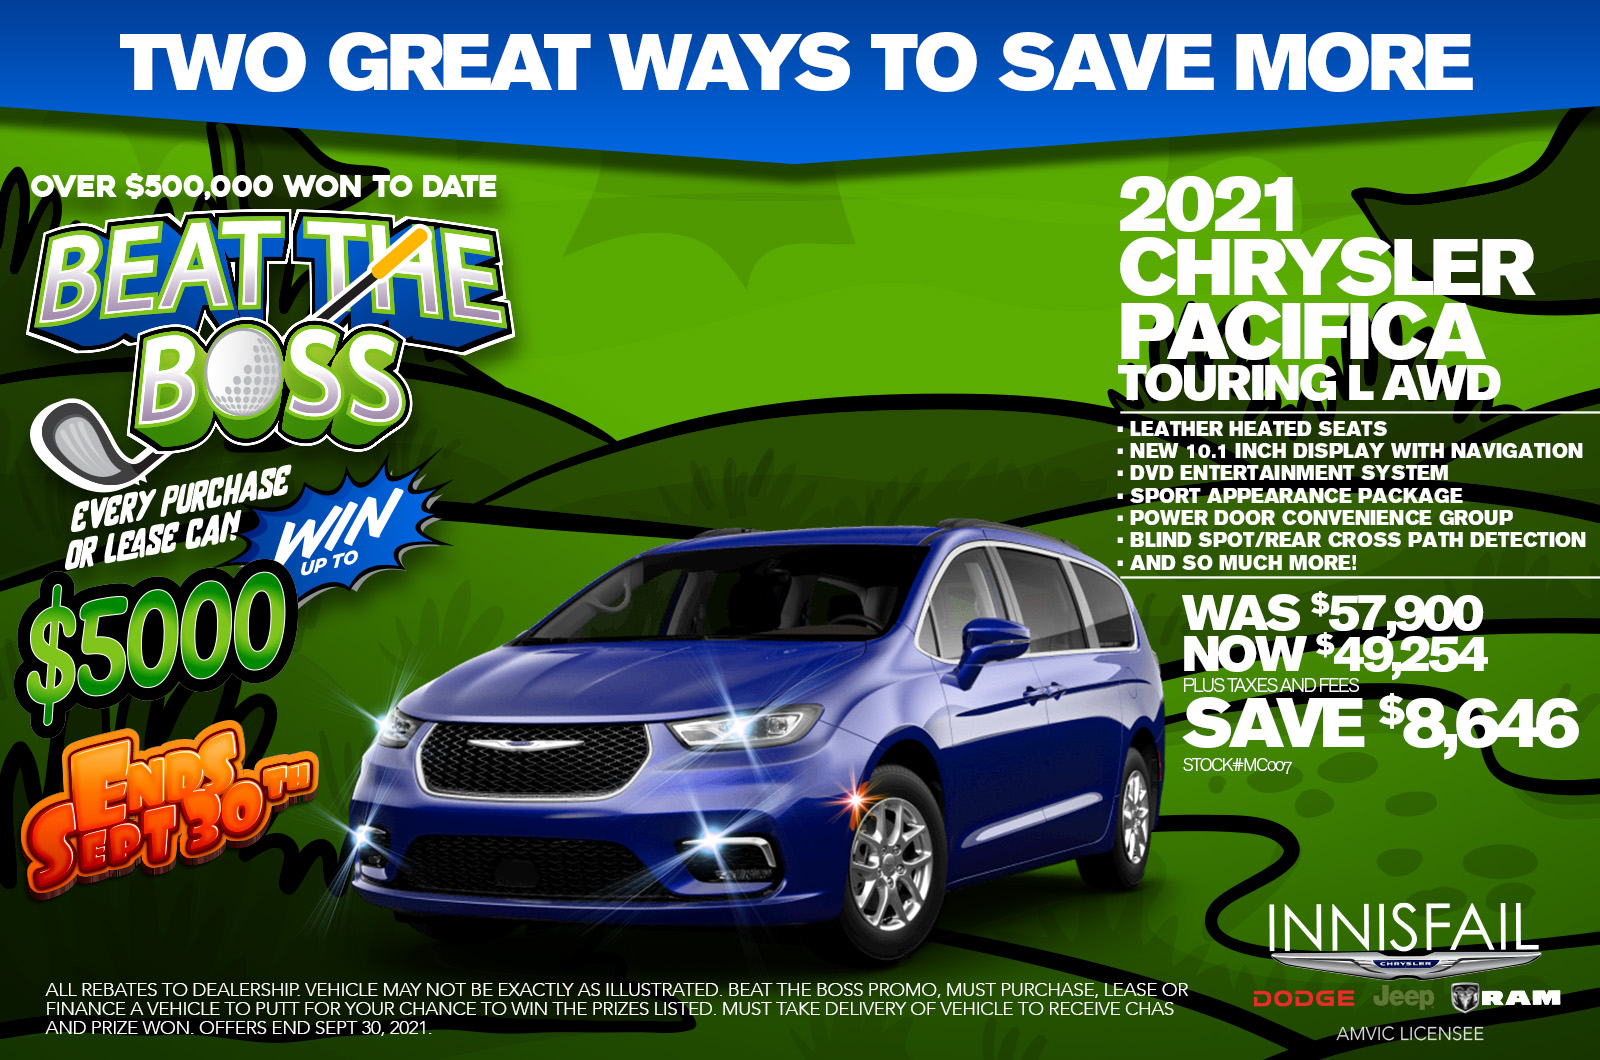 http://2021%20Chrysler%20Pacifica%20Touring%20AWD